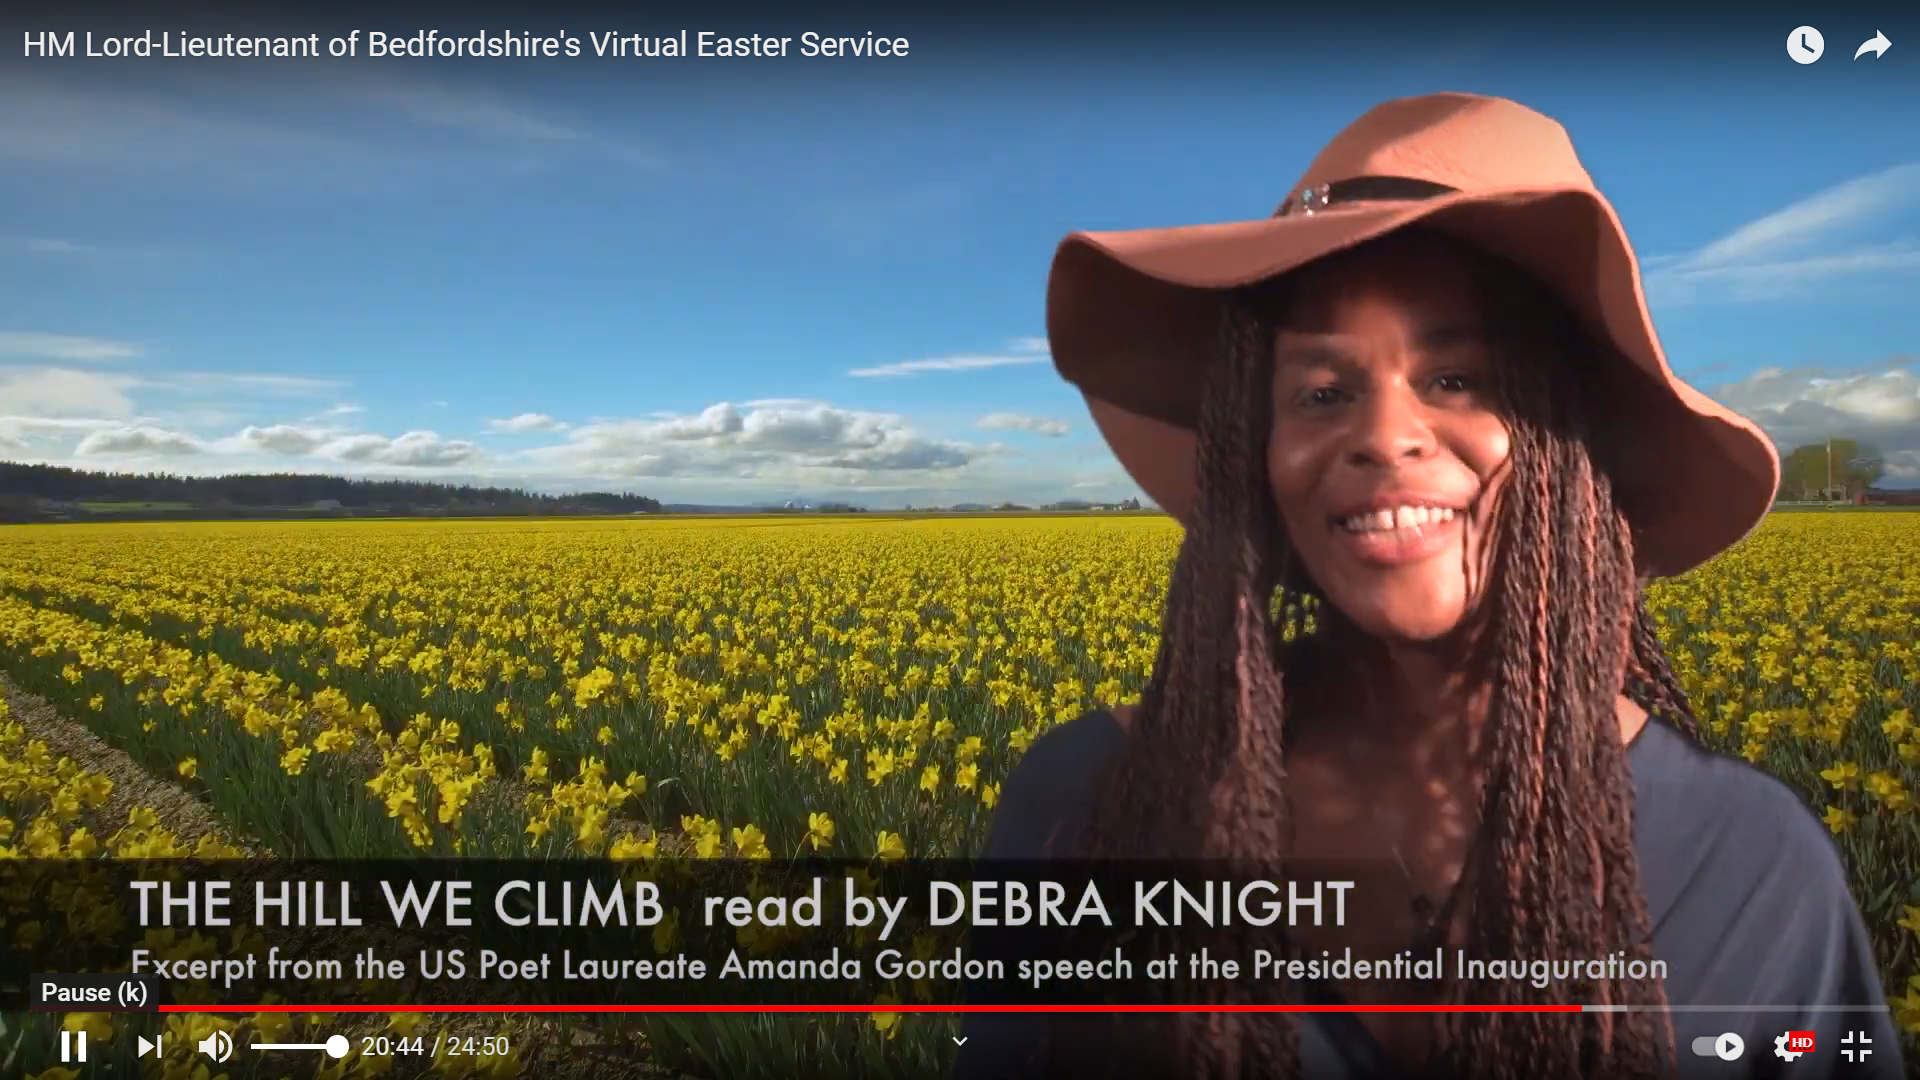 """Naz Knight reading Amanda Gorman """"The Hill we Climb"""" at the Lord Lieutenant of Bedfordshire Virtual Easter service"""